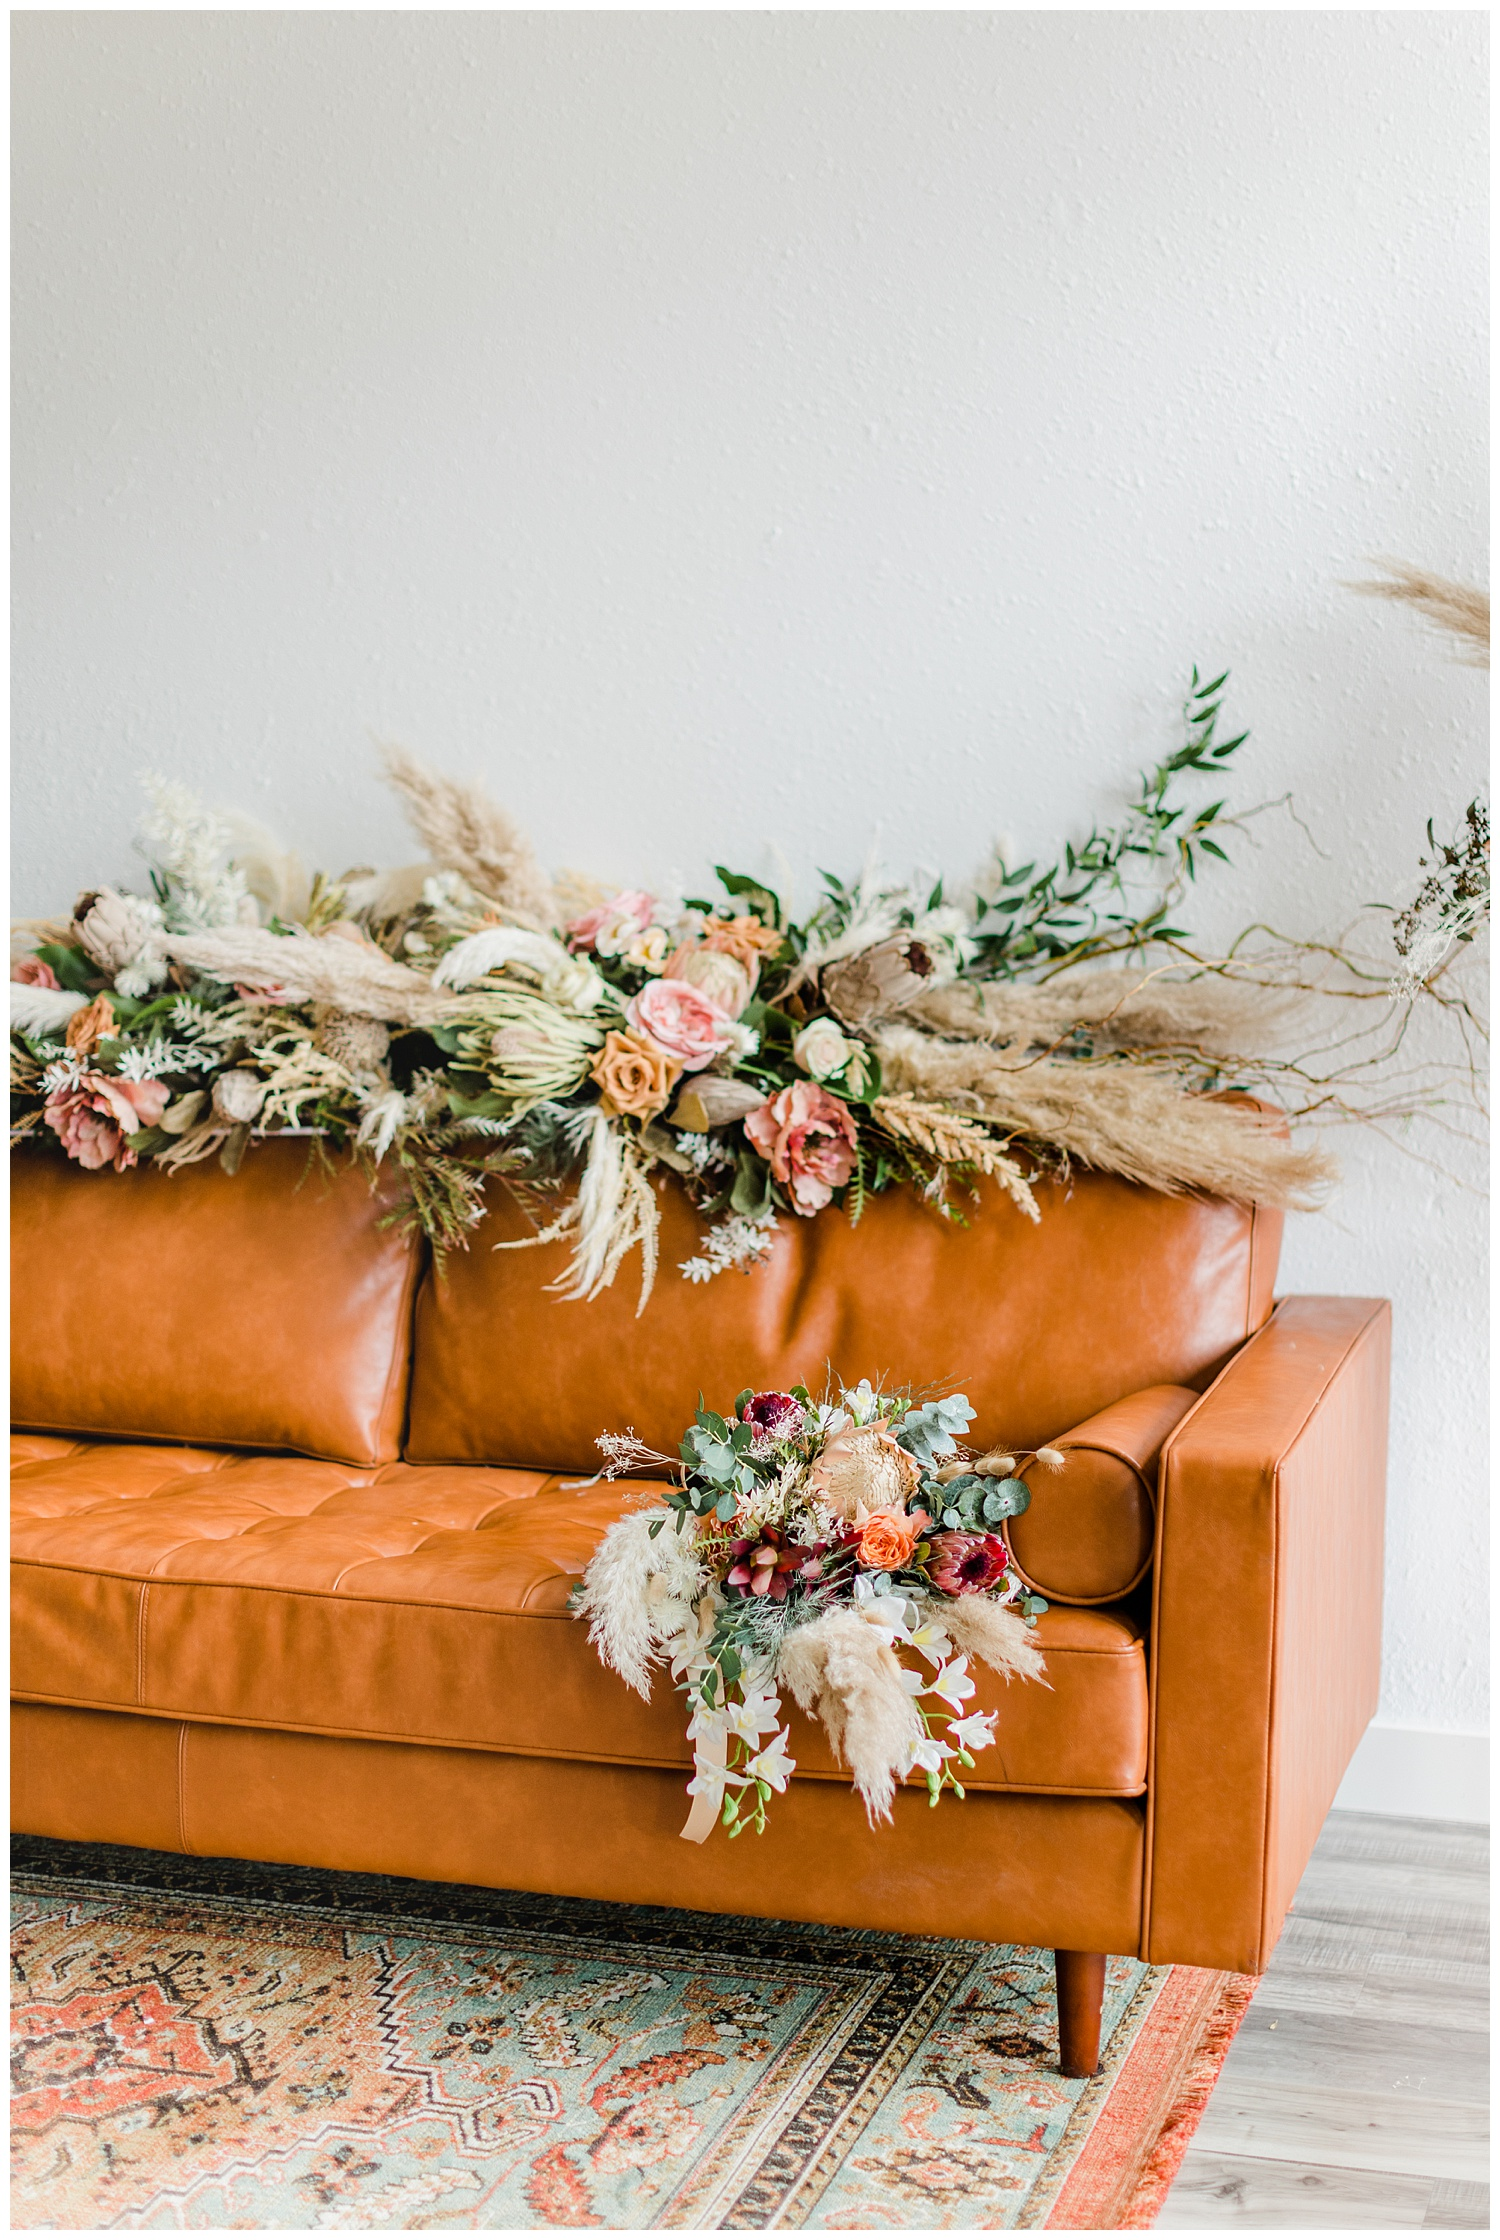 Vintage Boho floral couch arrangement and bridal bouquet complete with pampas grass, roses, eucalyptus and other dried florals | CB Studio